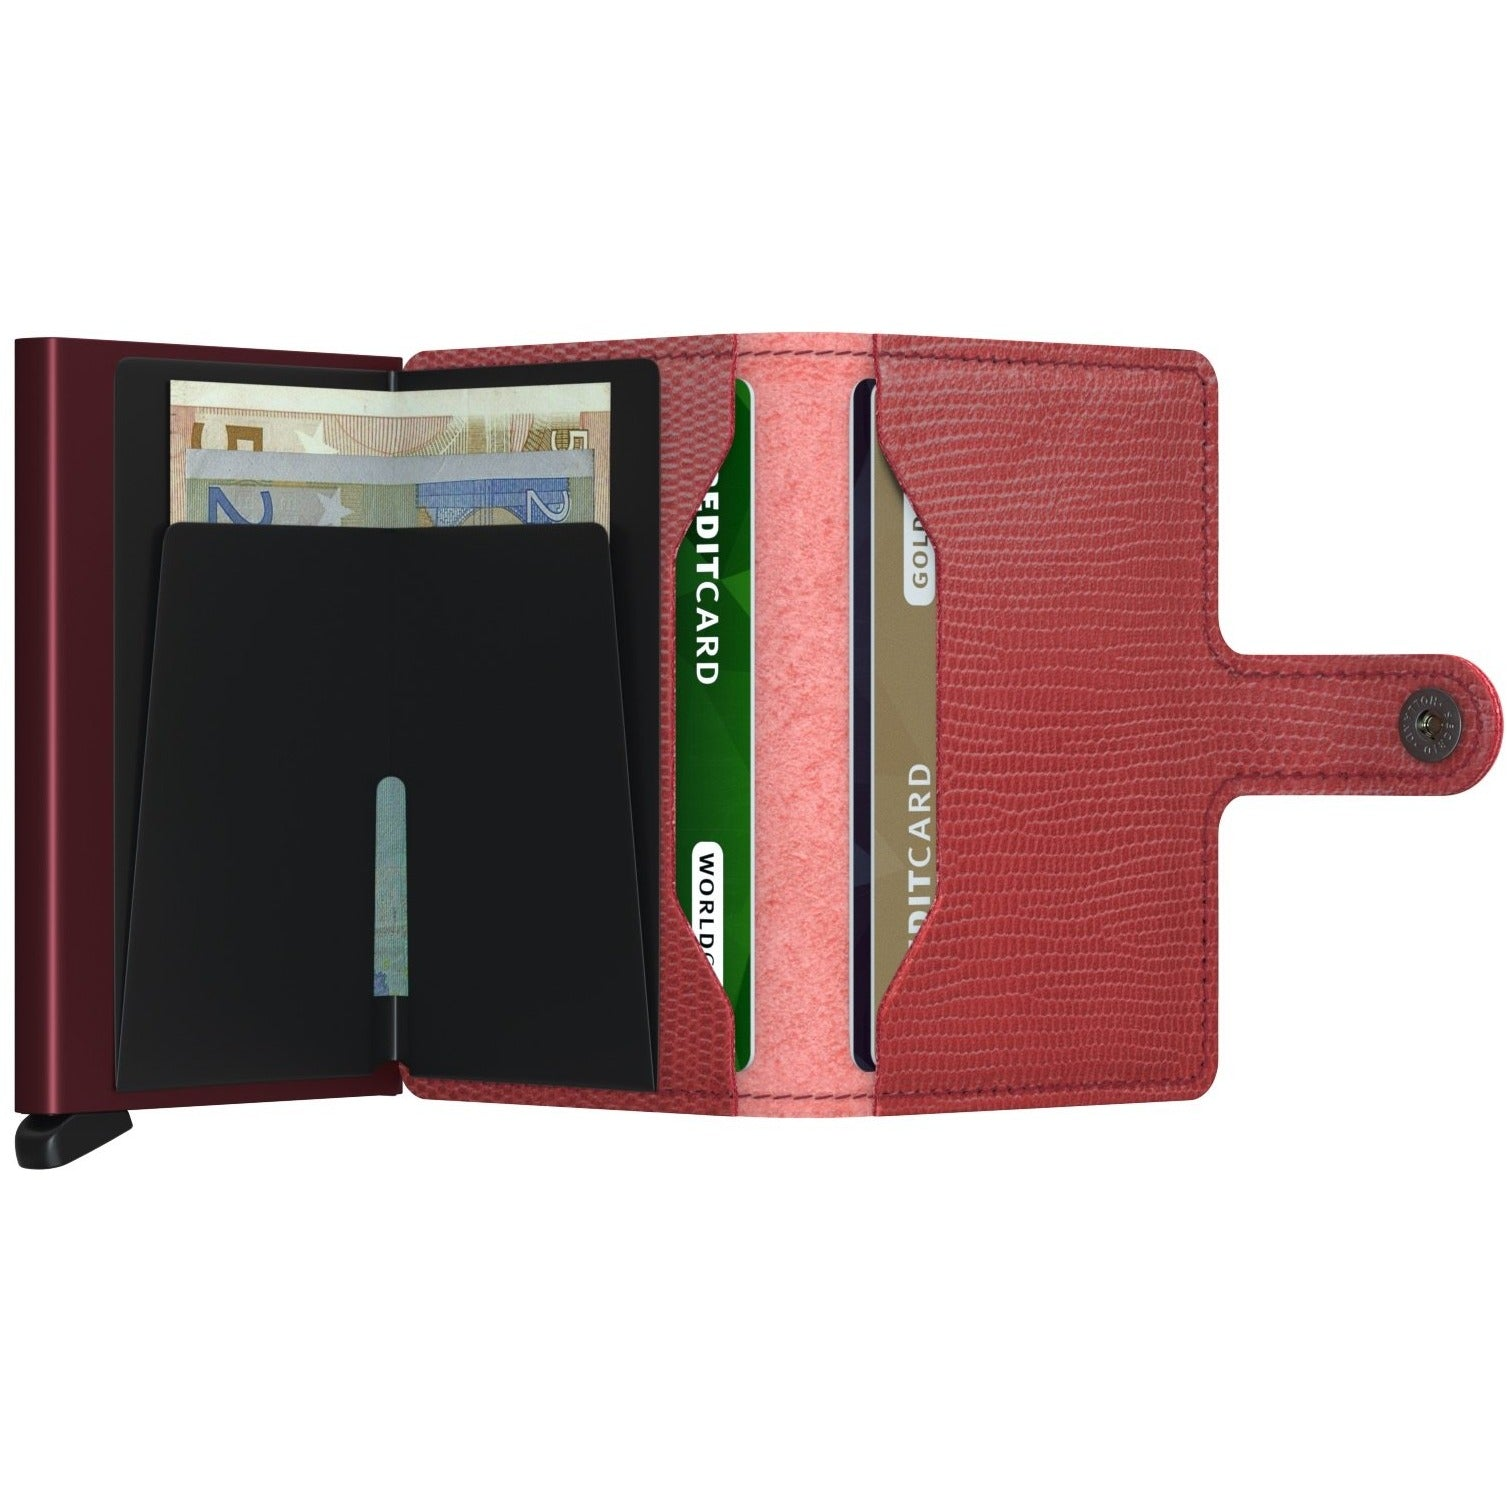 Secrid Miniwallet, Rango Red & Bordeaux